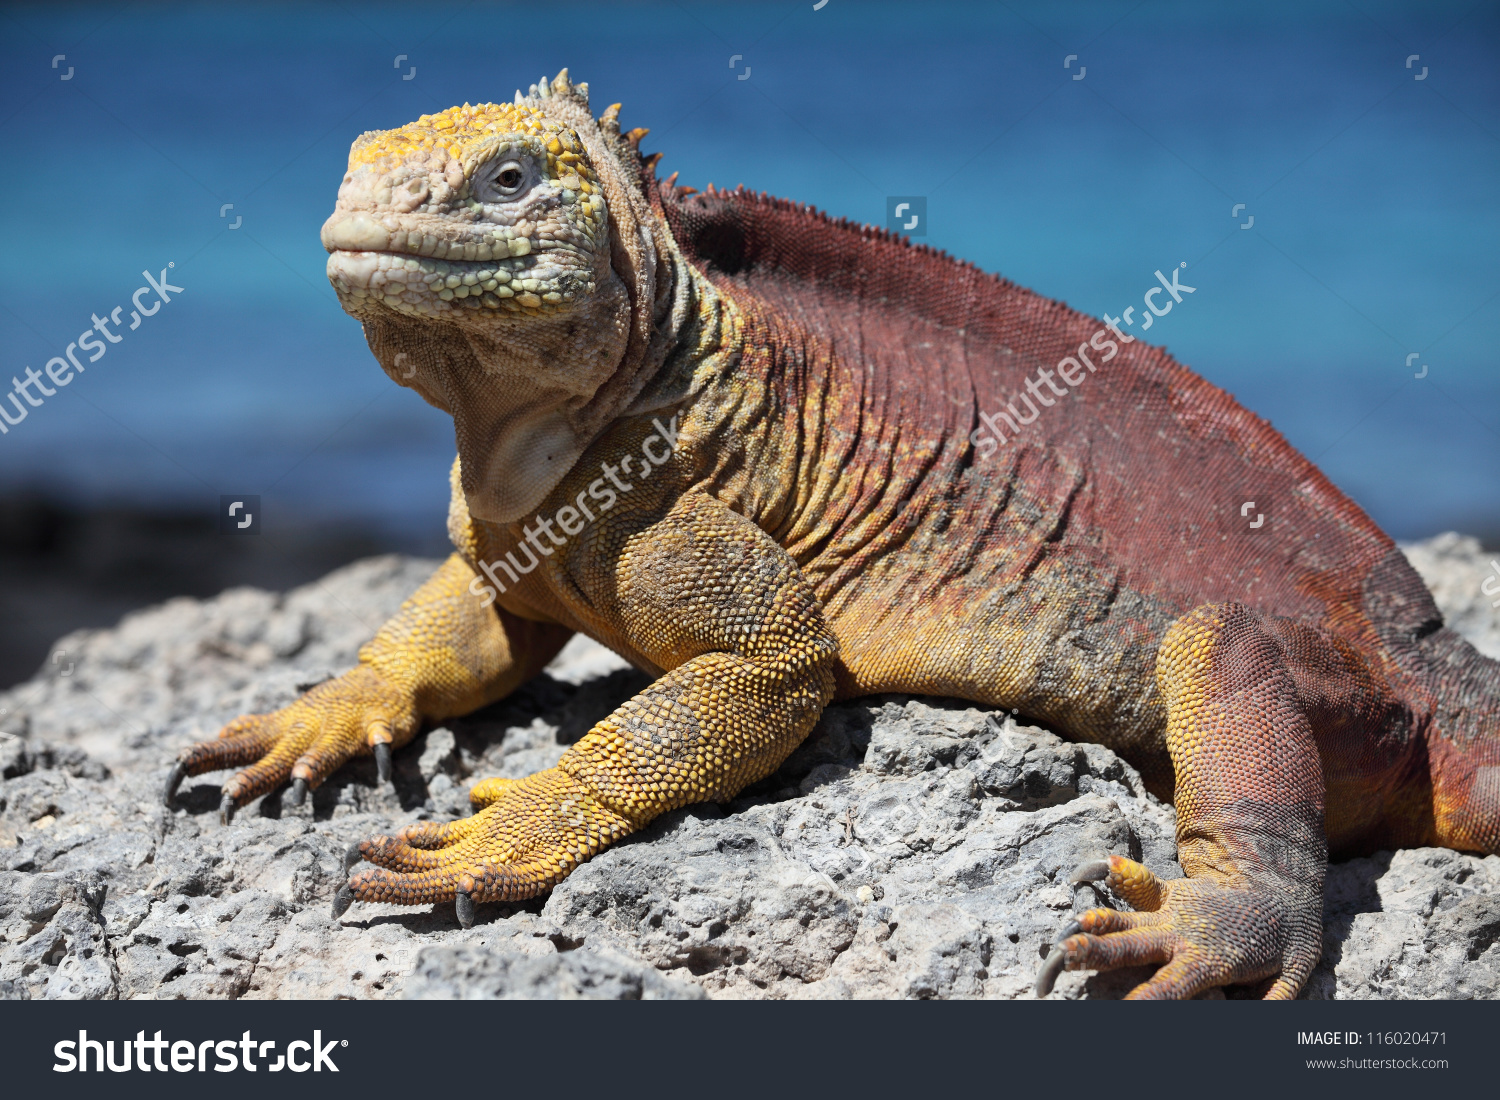 Galapagos Land Iguana clipart #2, Download drawings